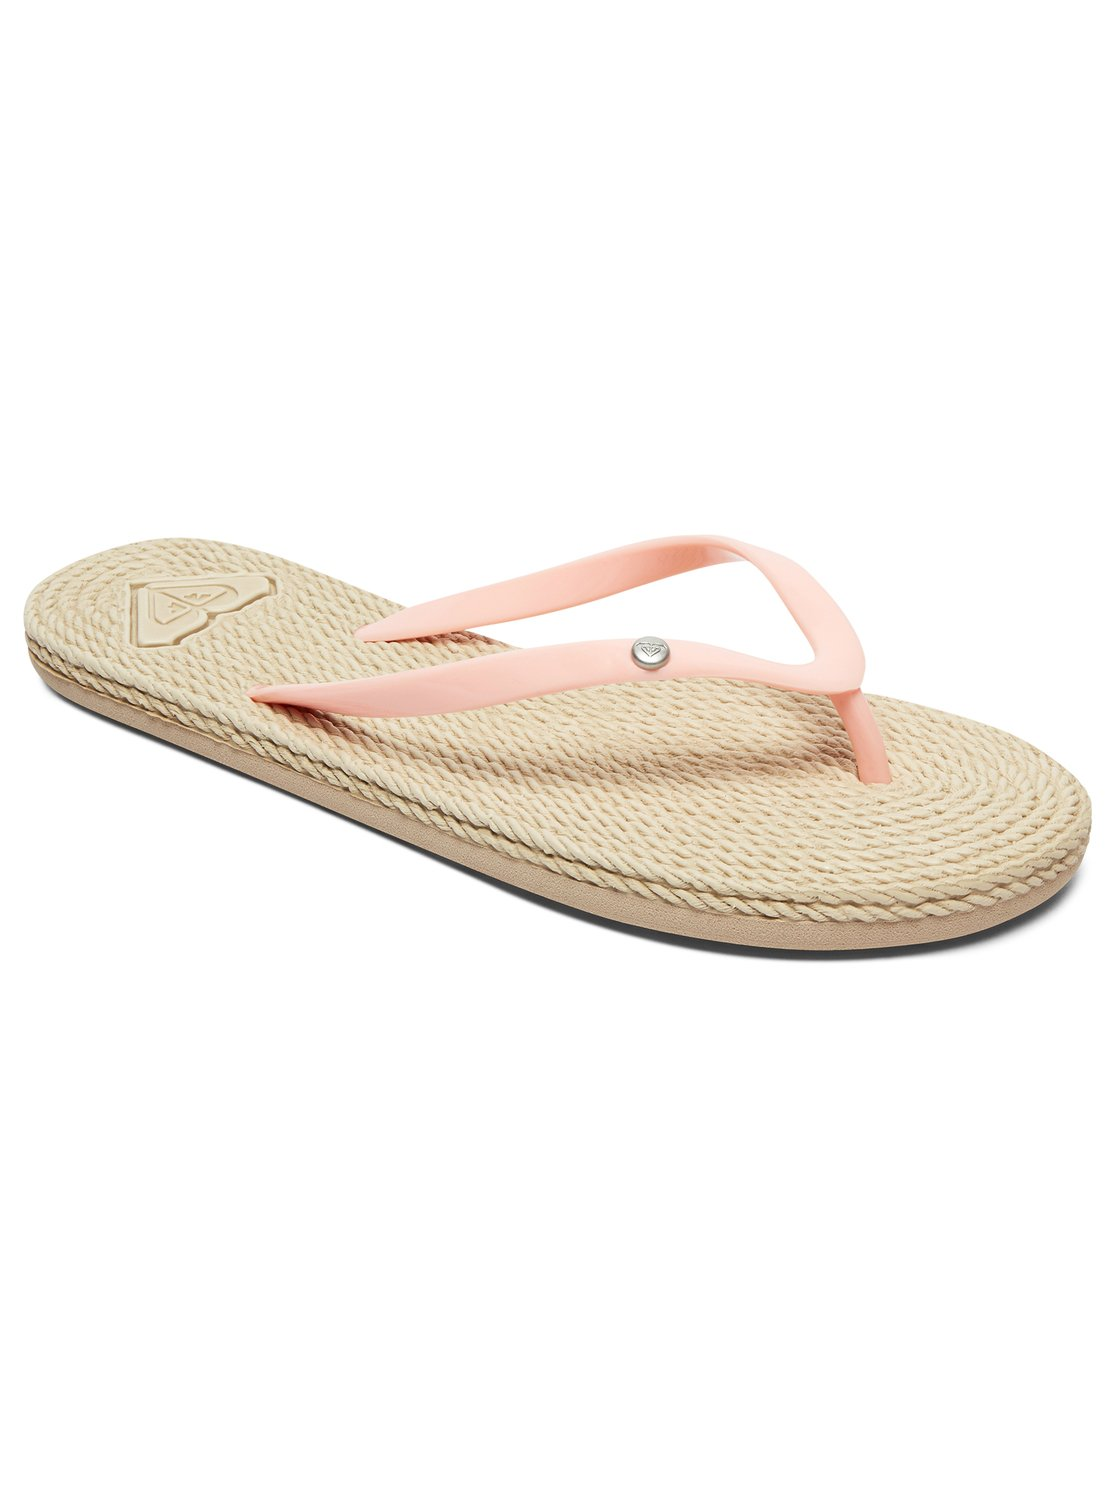 South Beach - Chanclas para Mujer Roxy